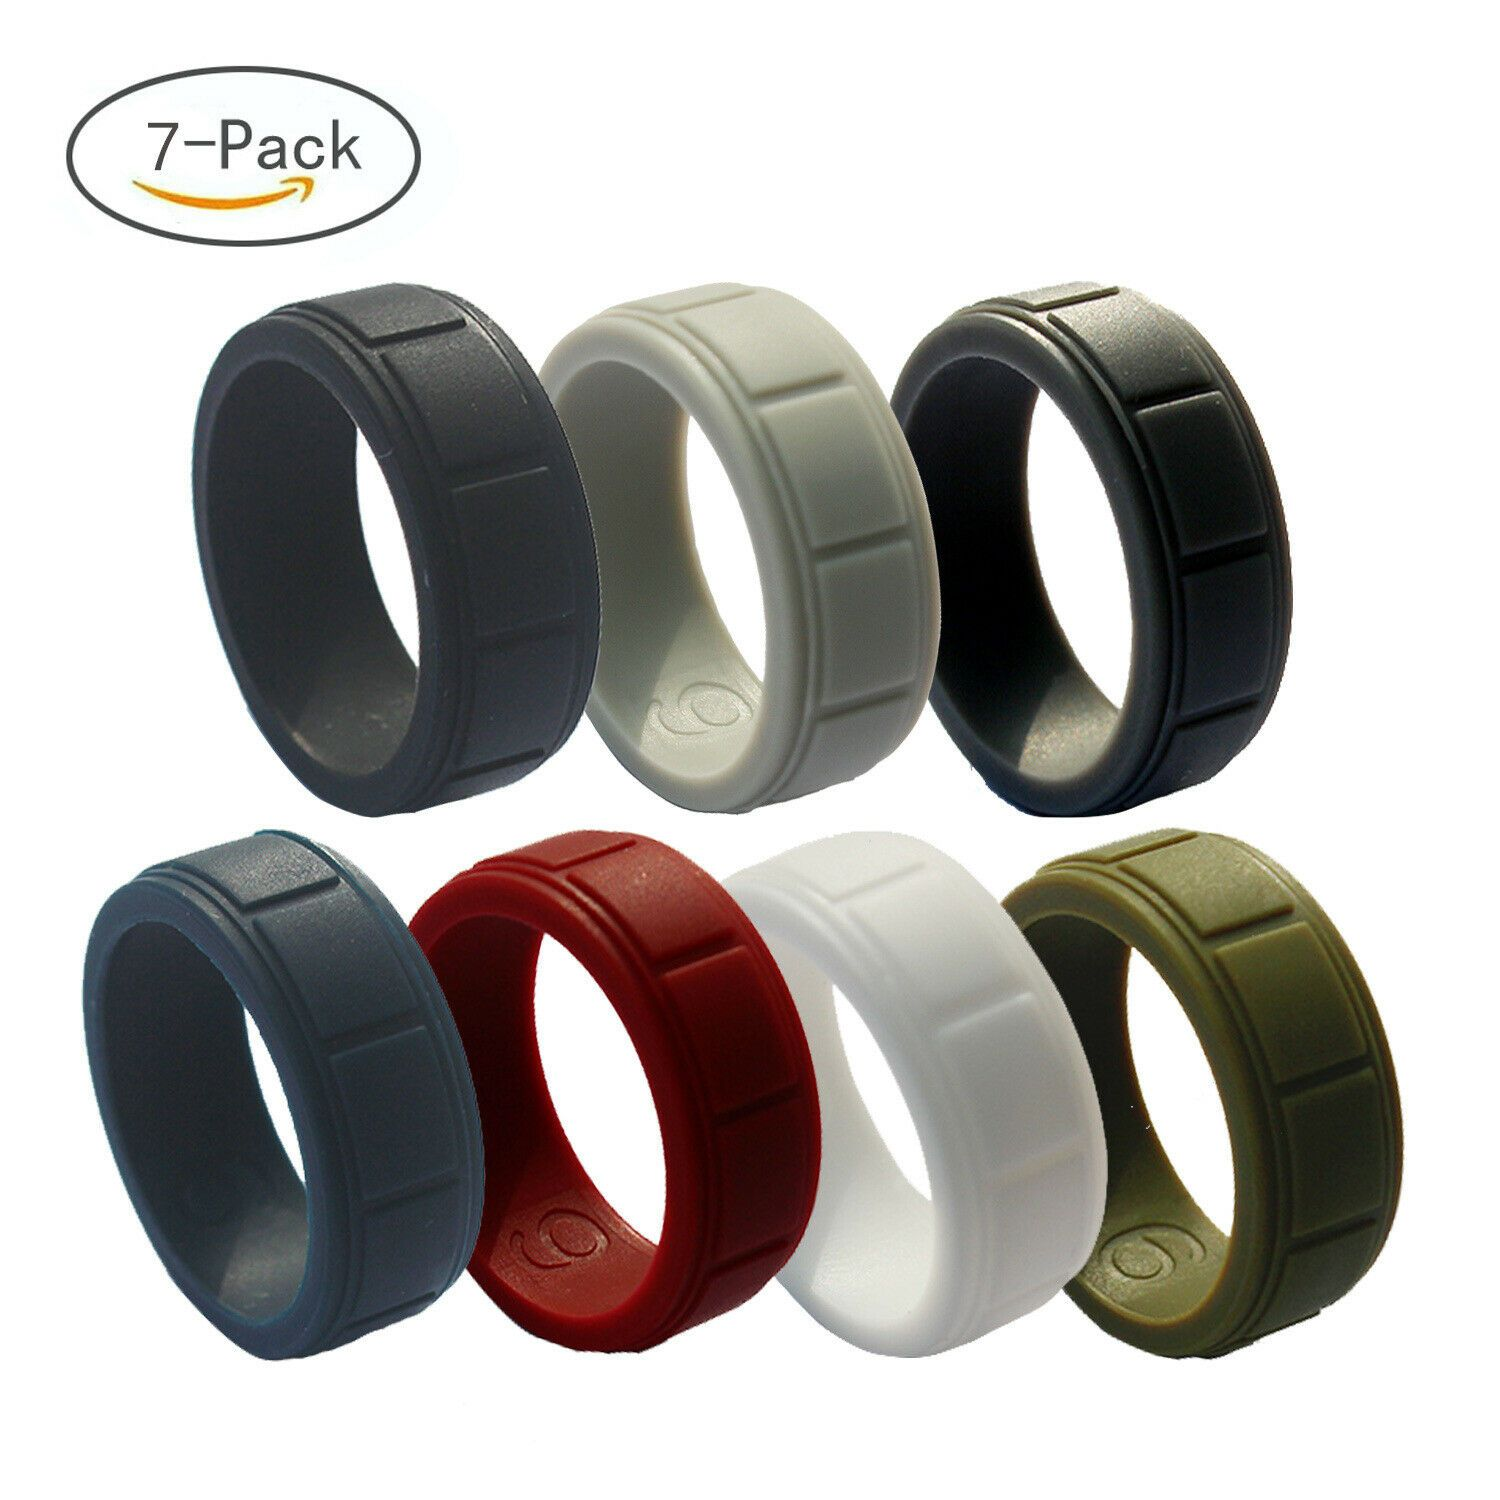 7pcs Silicone Wedding Ring Men Rubber Band Set Gym Comfort Sport Work Flexible In 2020 Silicone Wedding Ring Men Rubber Wedding Band Rings Silicone Rings